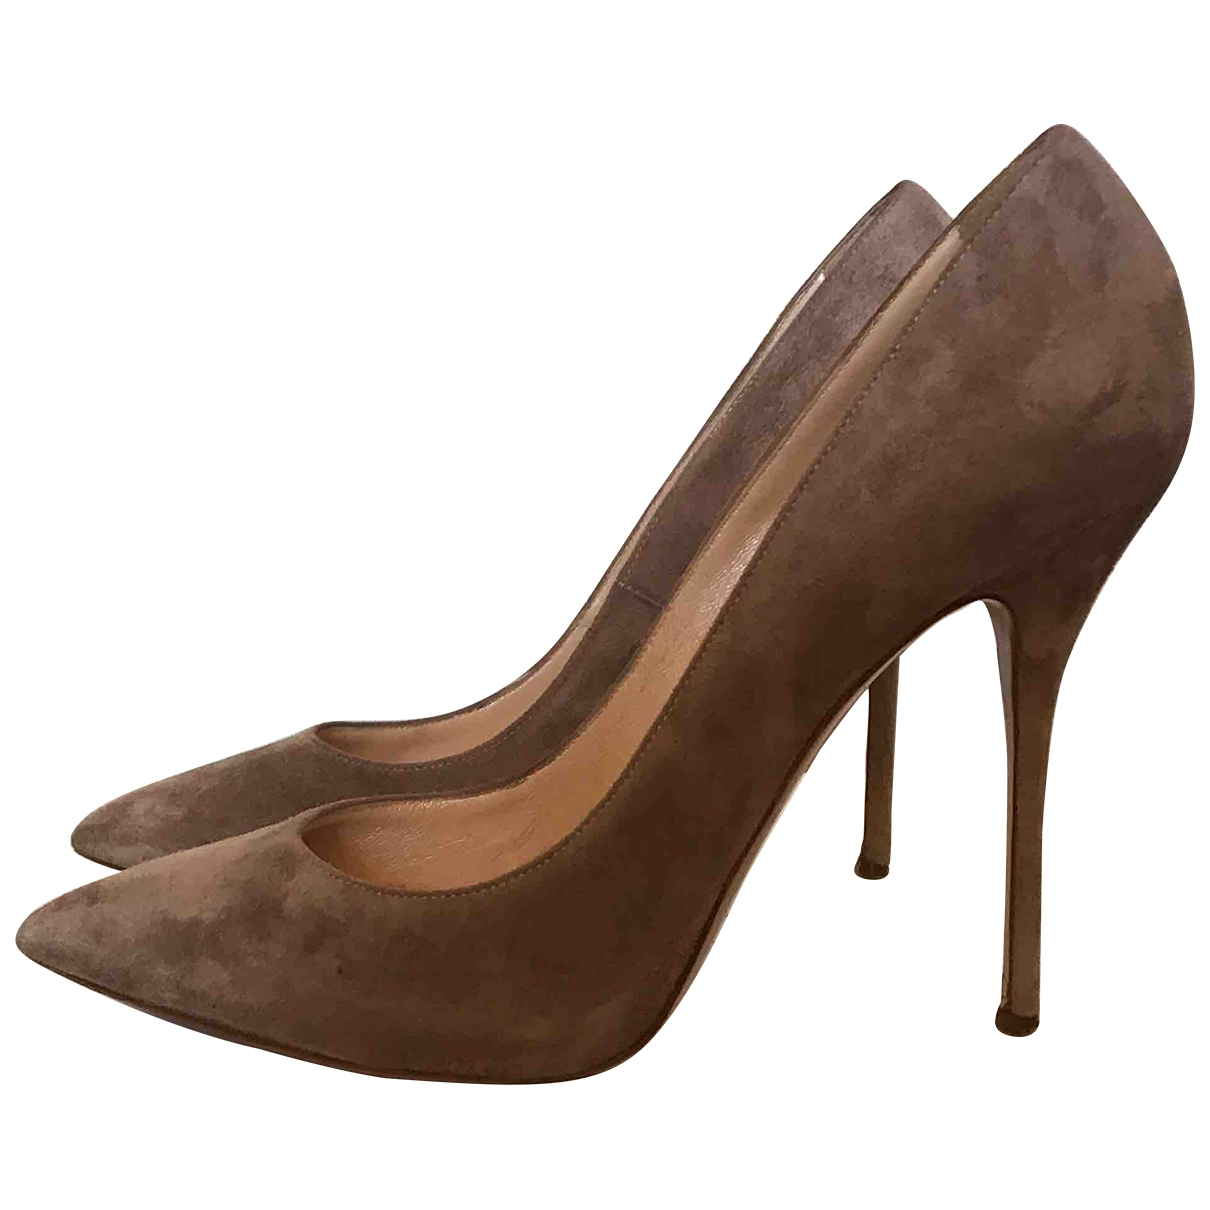 Casadei \N Beige Suede Heels for Women 9 US